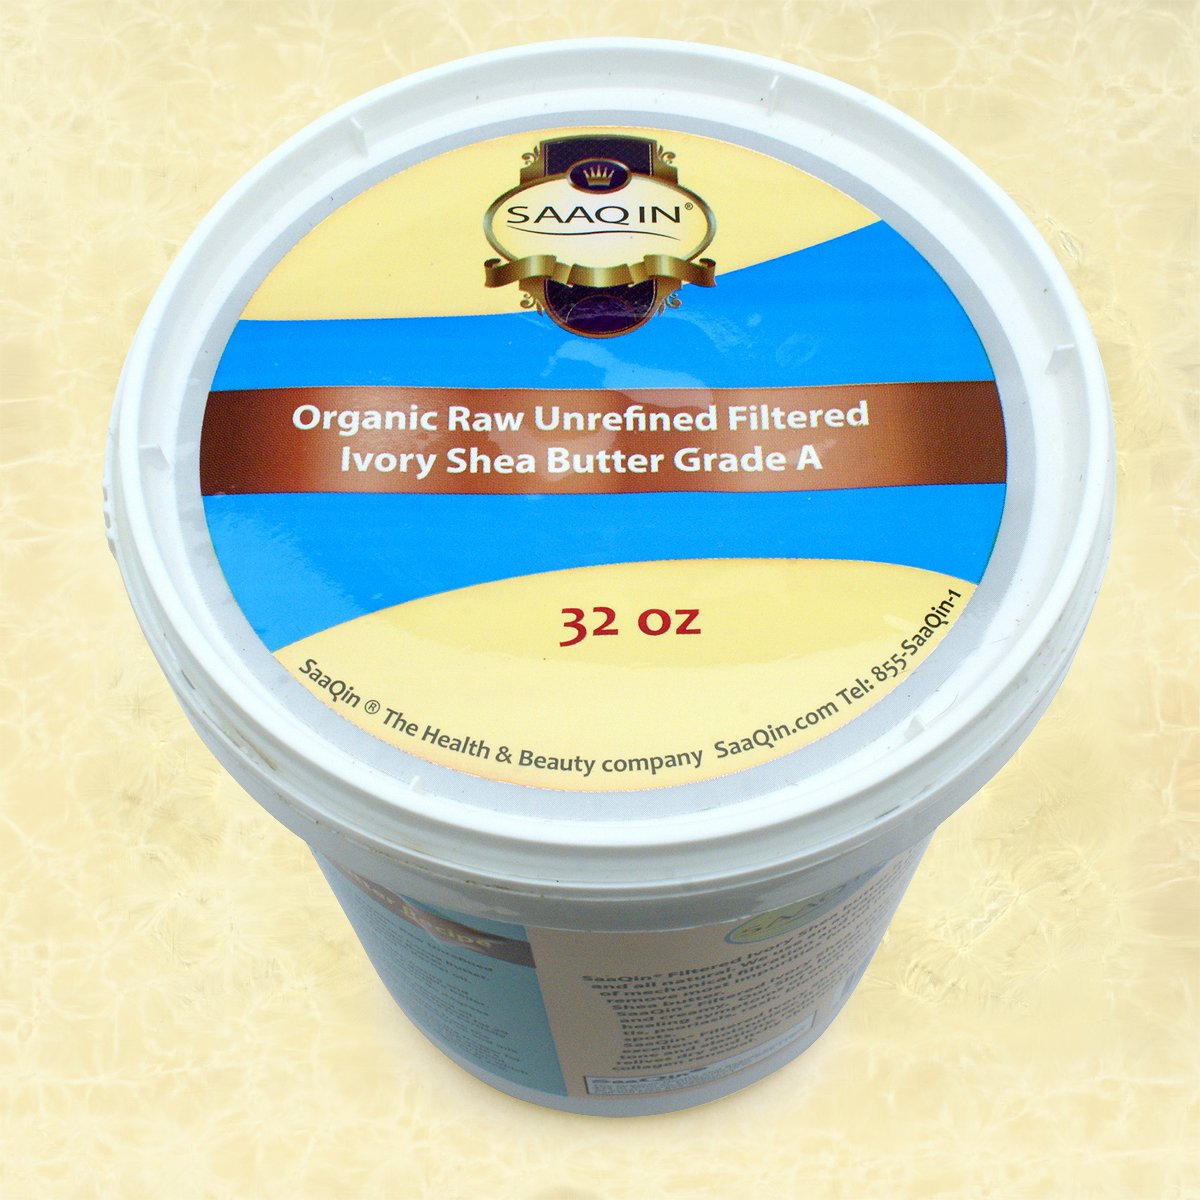 Authentic Organic Ivory Shea Butter - 32 Oz FILTERED & CREAMY, The Highest Quality Butter.